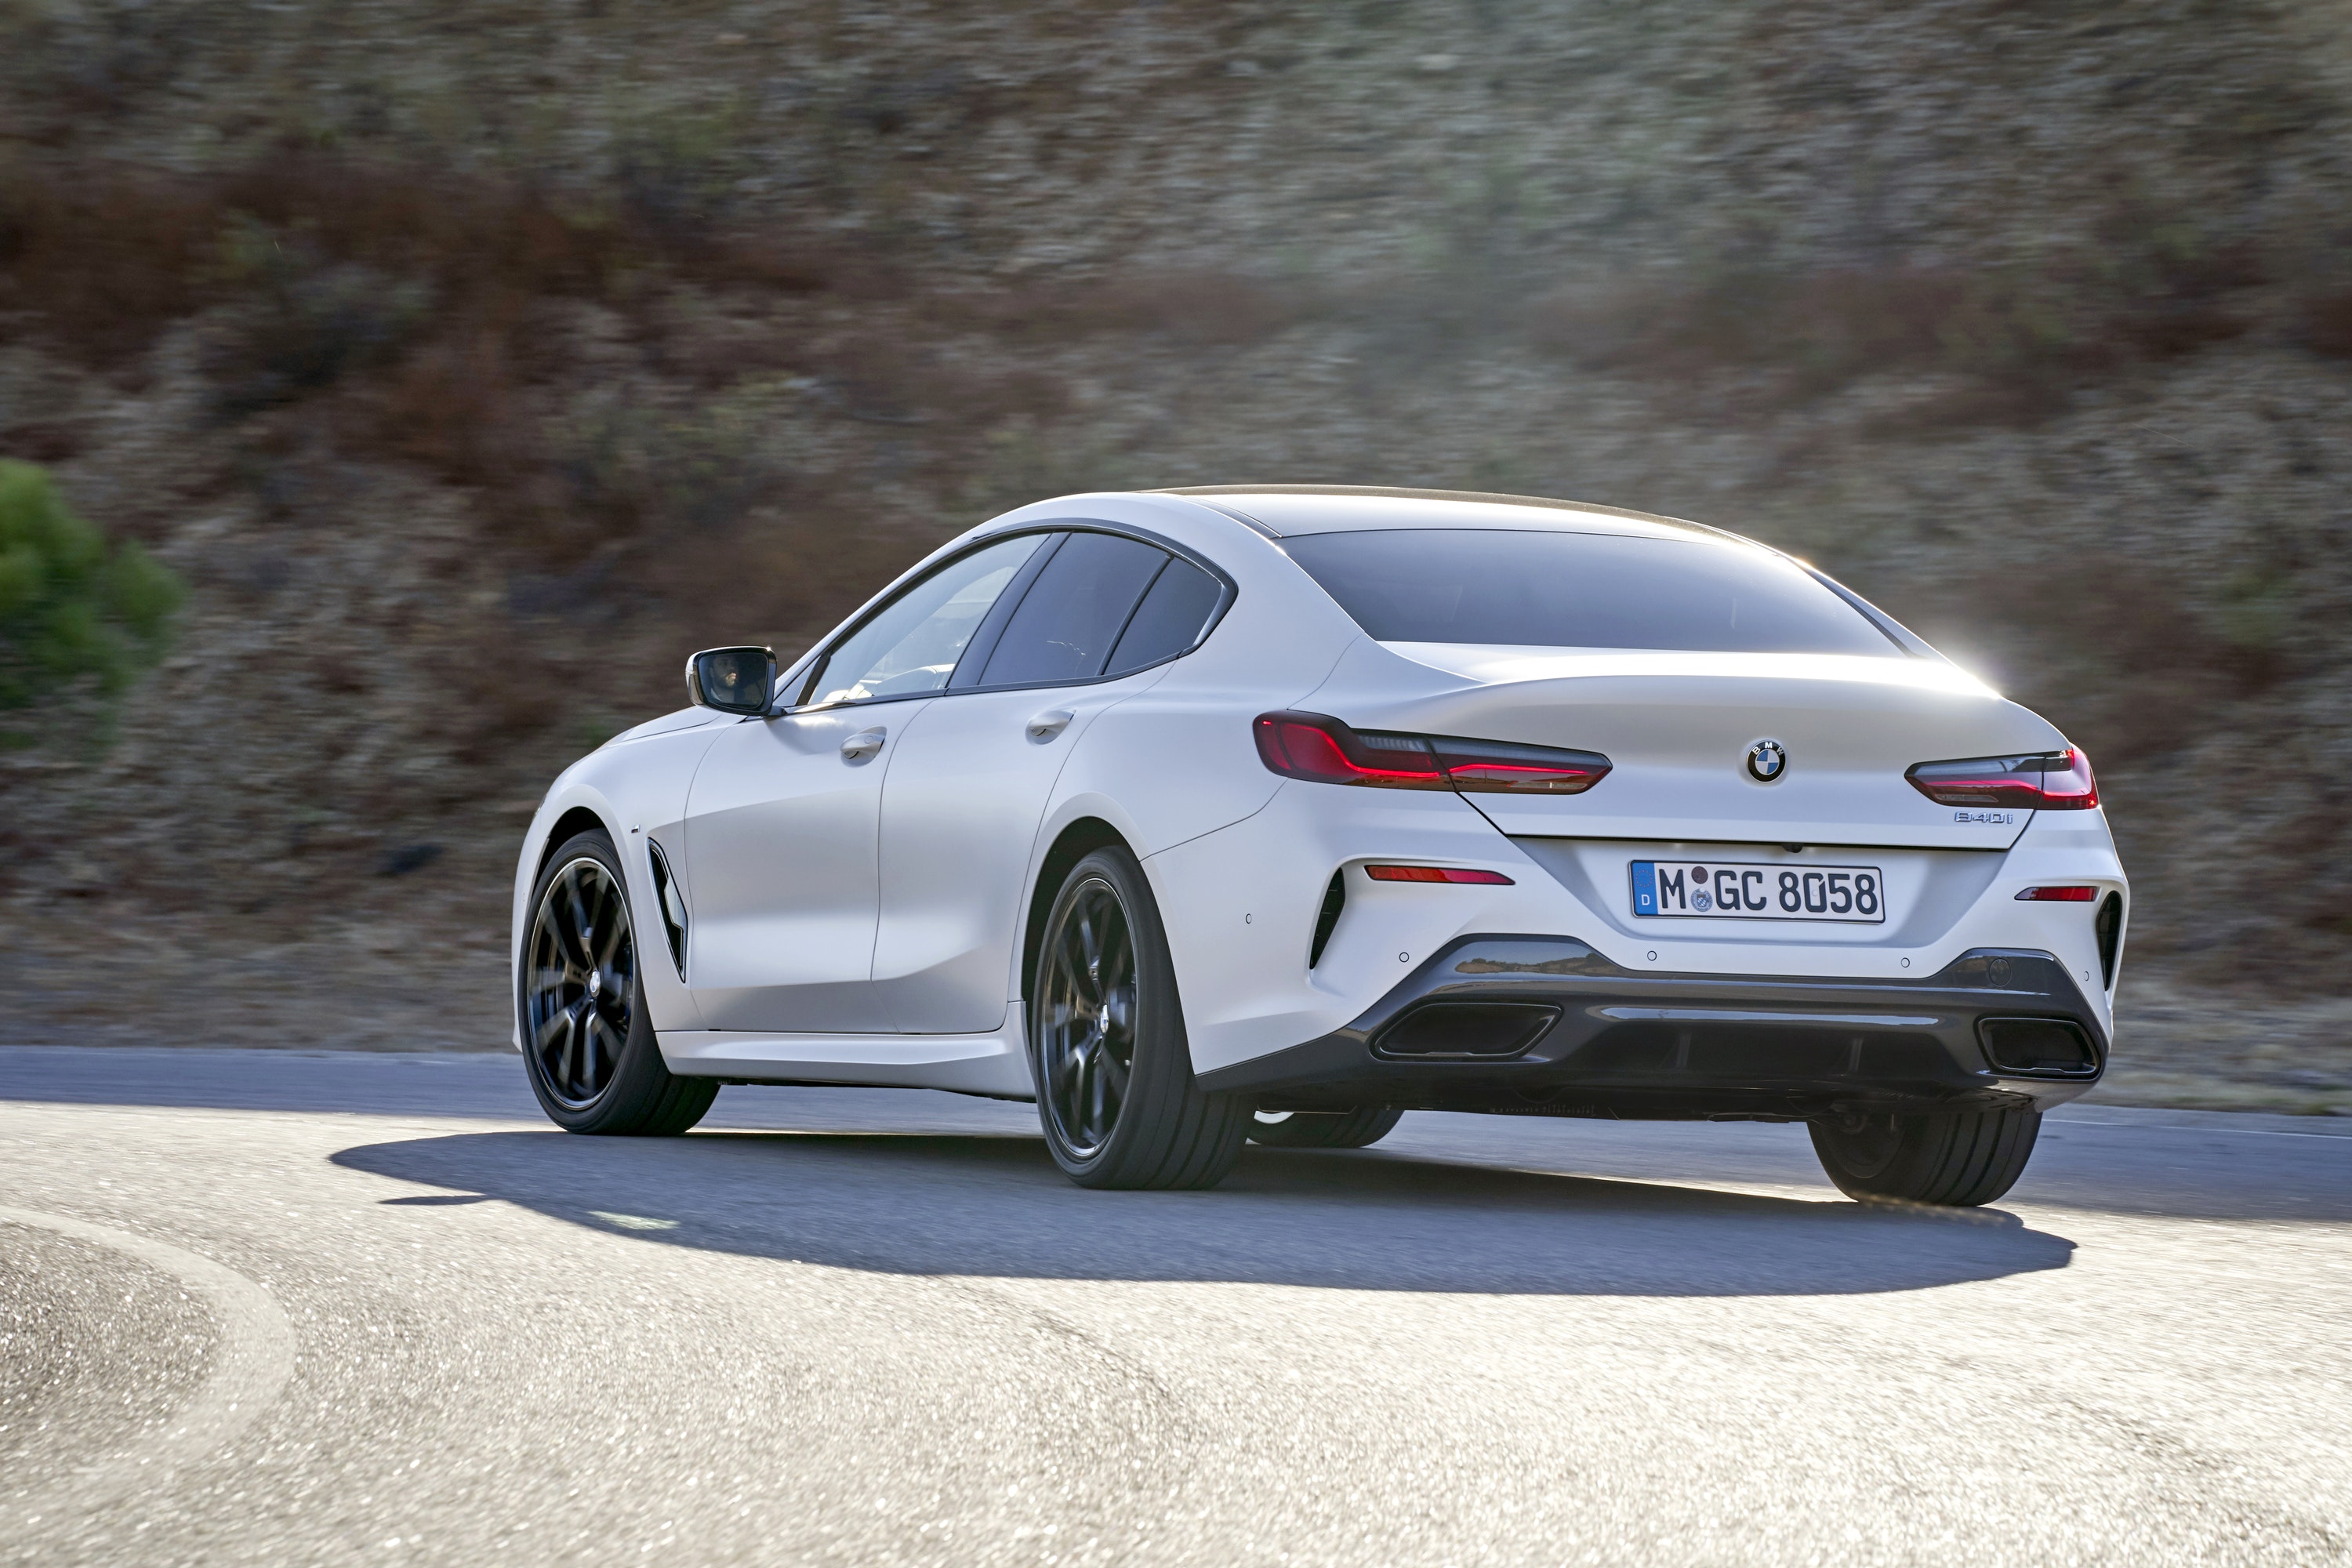 Rear view of White BMW 8 Series